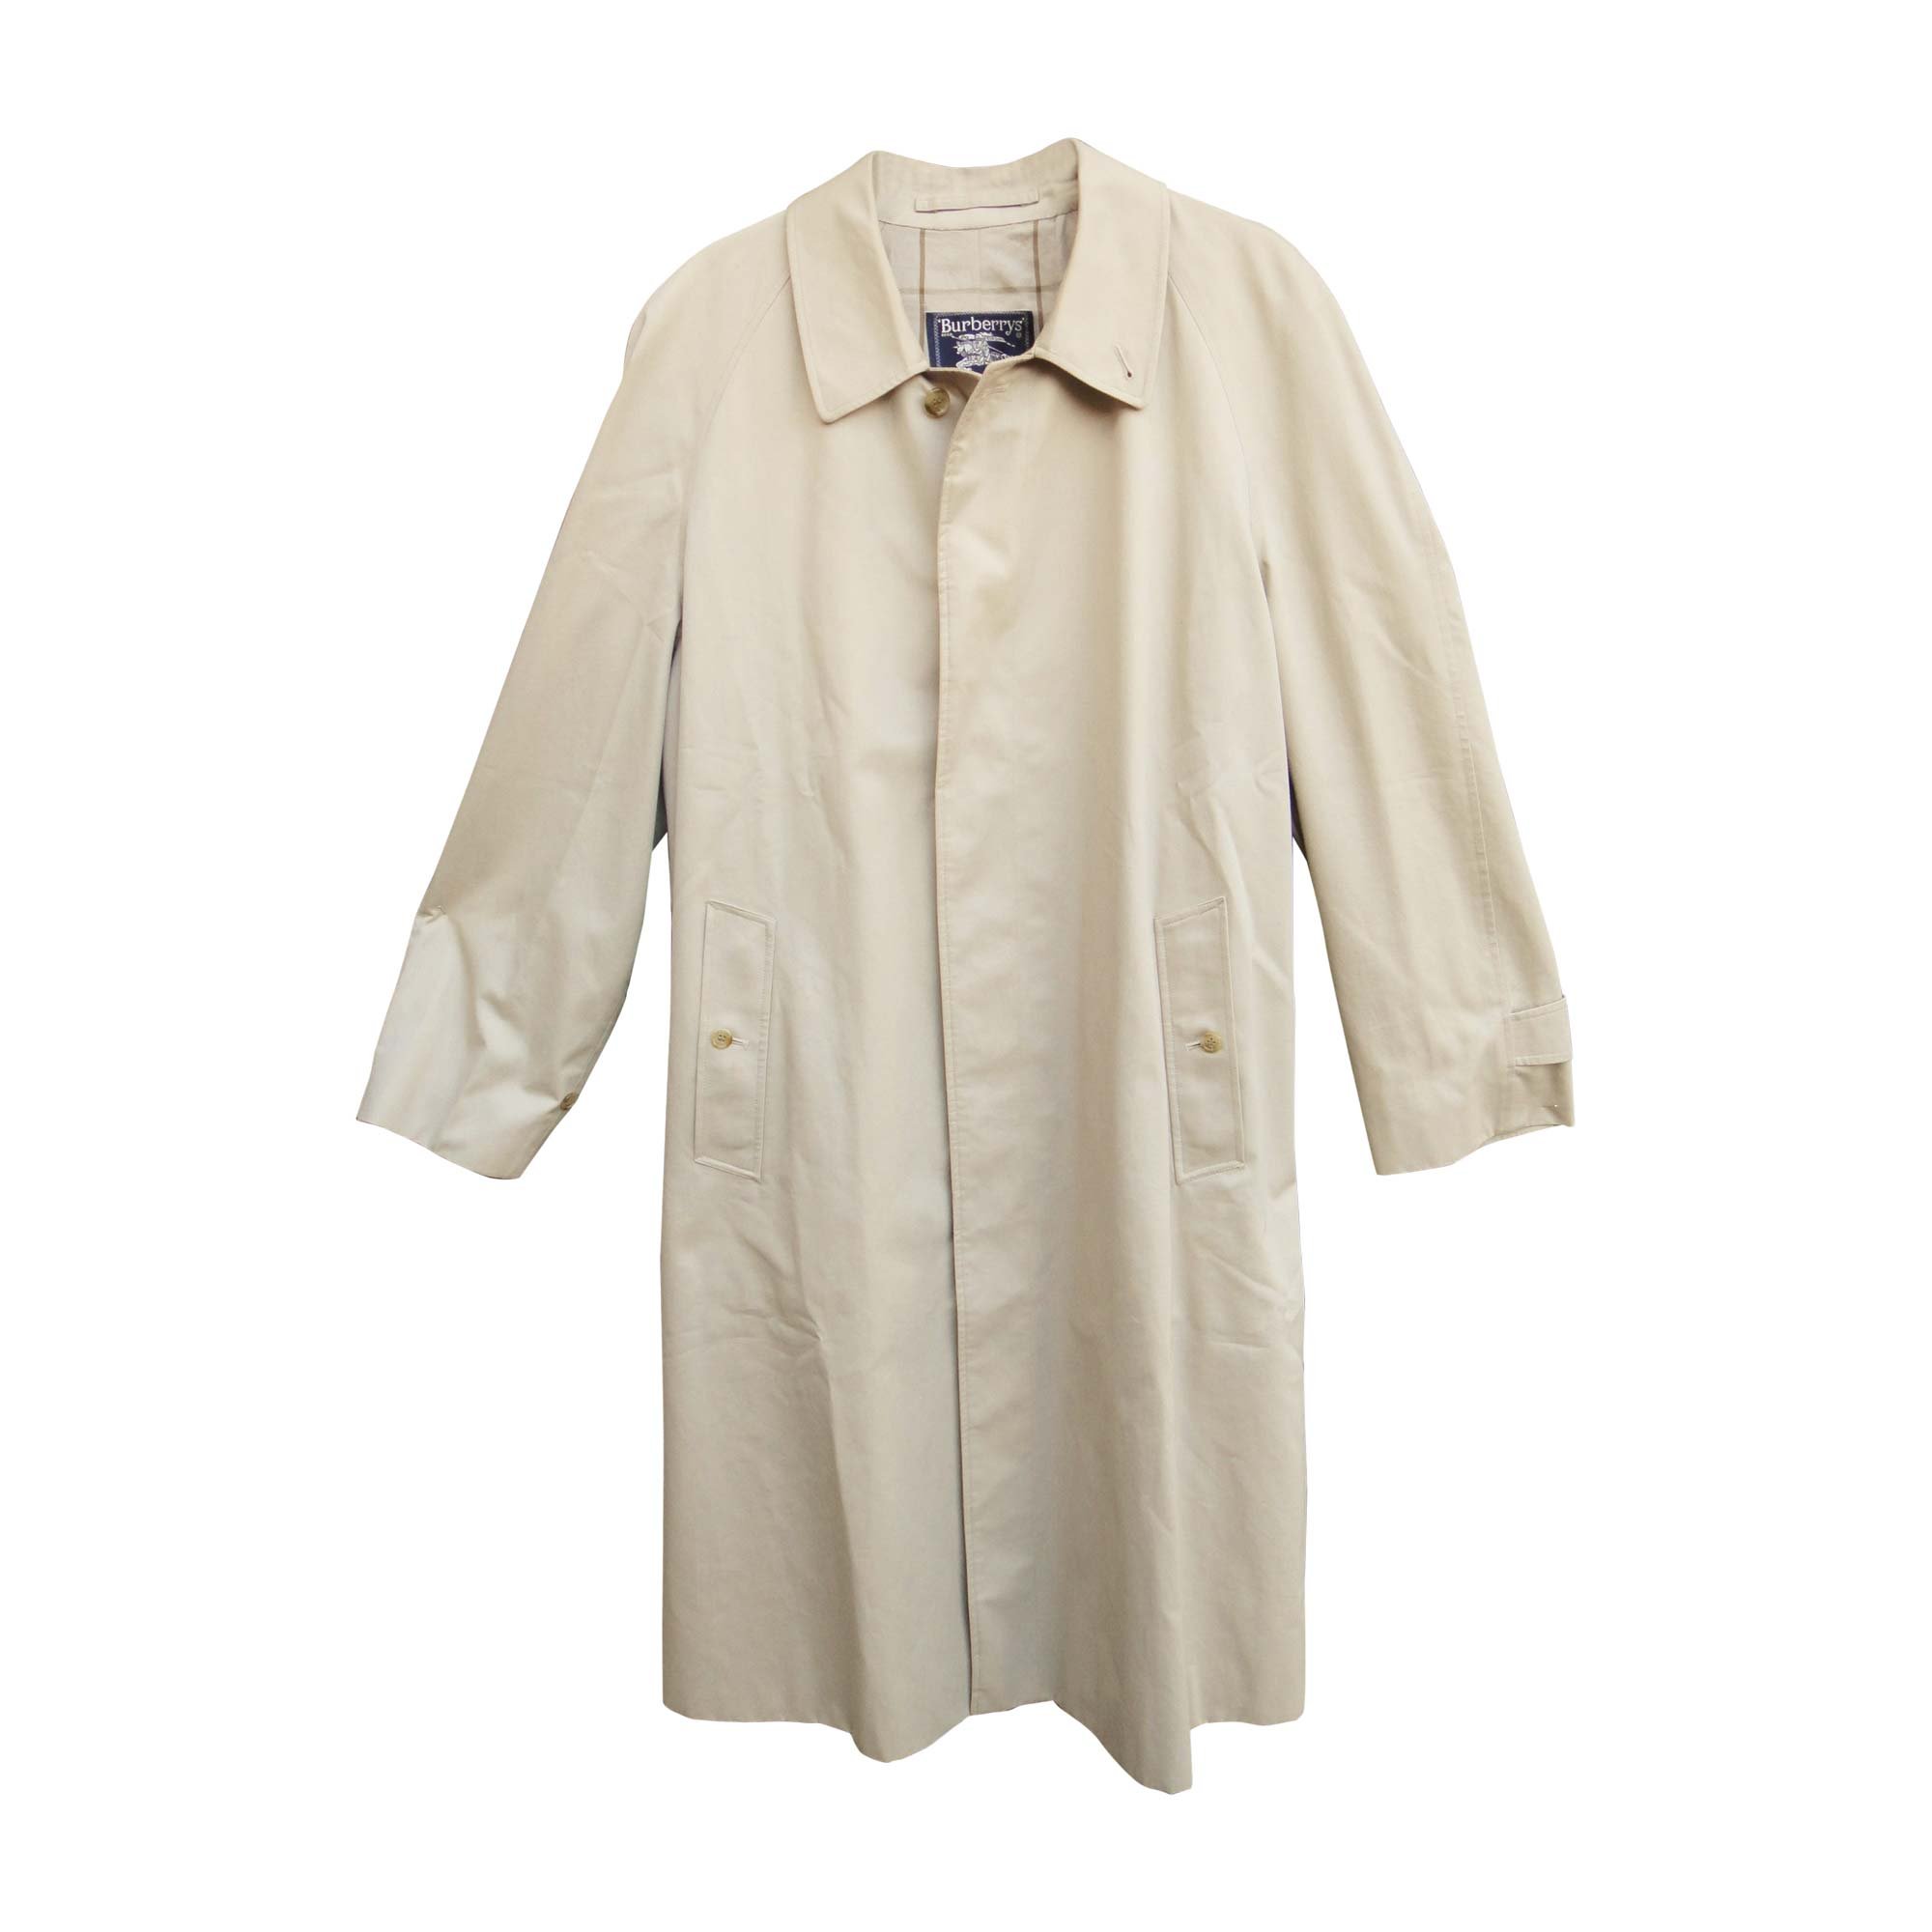 m Bianco 7334871 Impermeabile 50 Burberry Trench P4Z1Ux